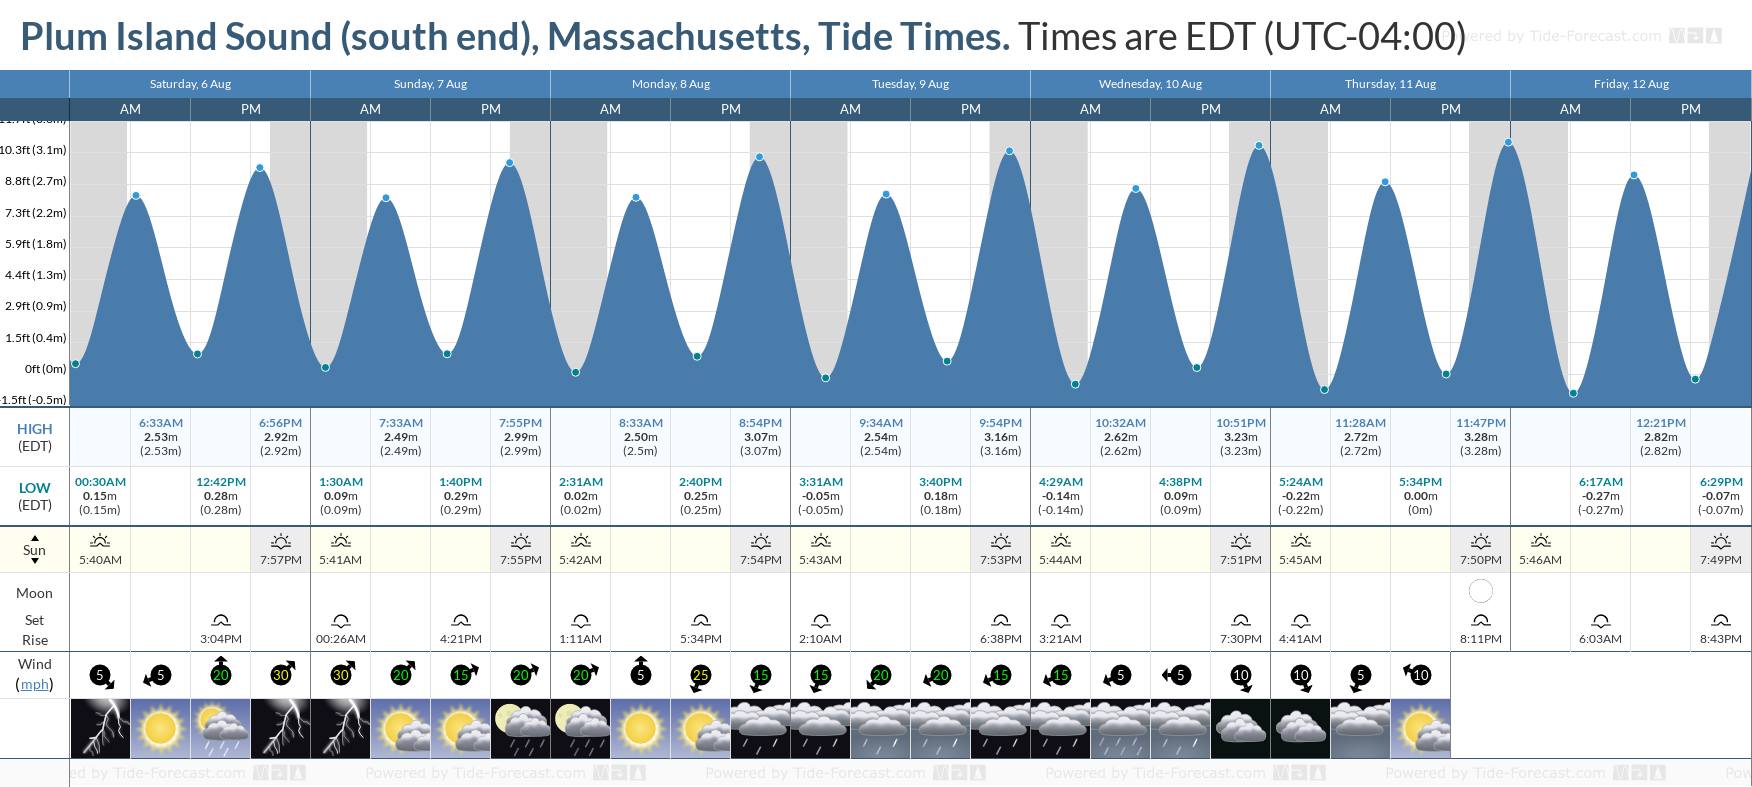 Plum Island Sound (south end), Massachusetts Tide Chart including high and low tide tide times for the next 7 days